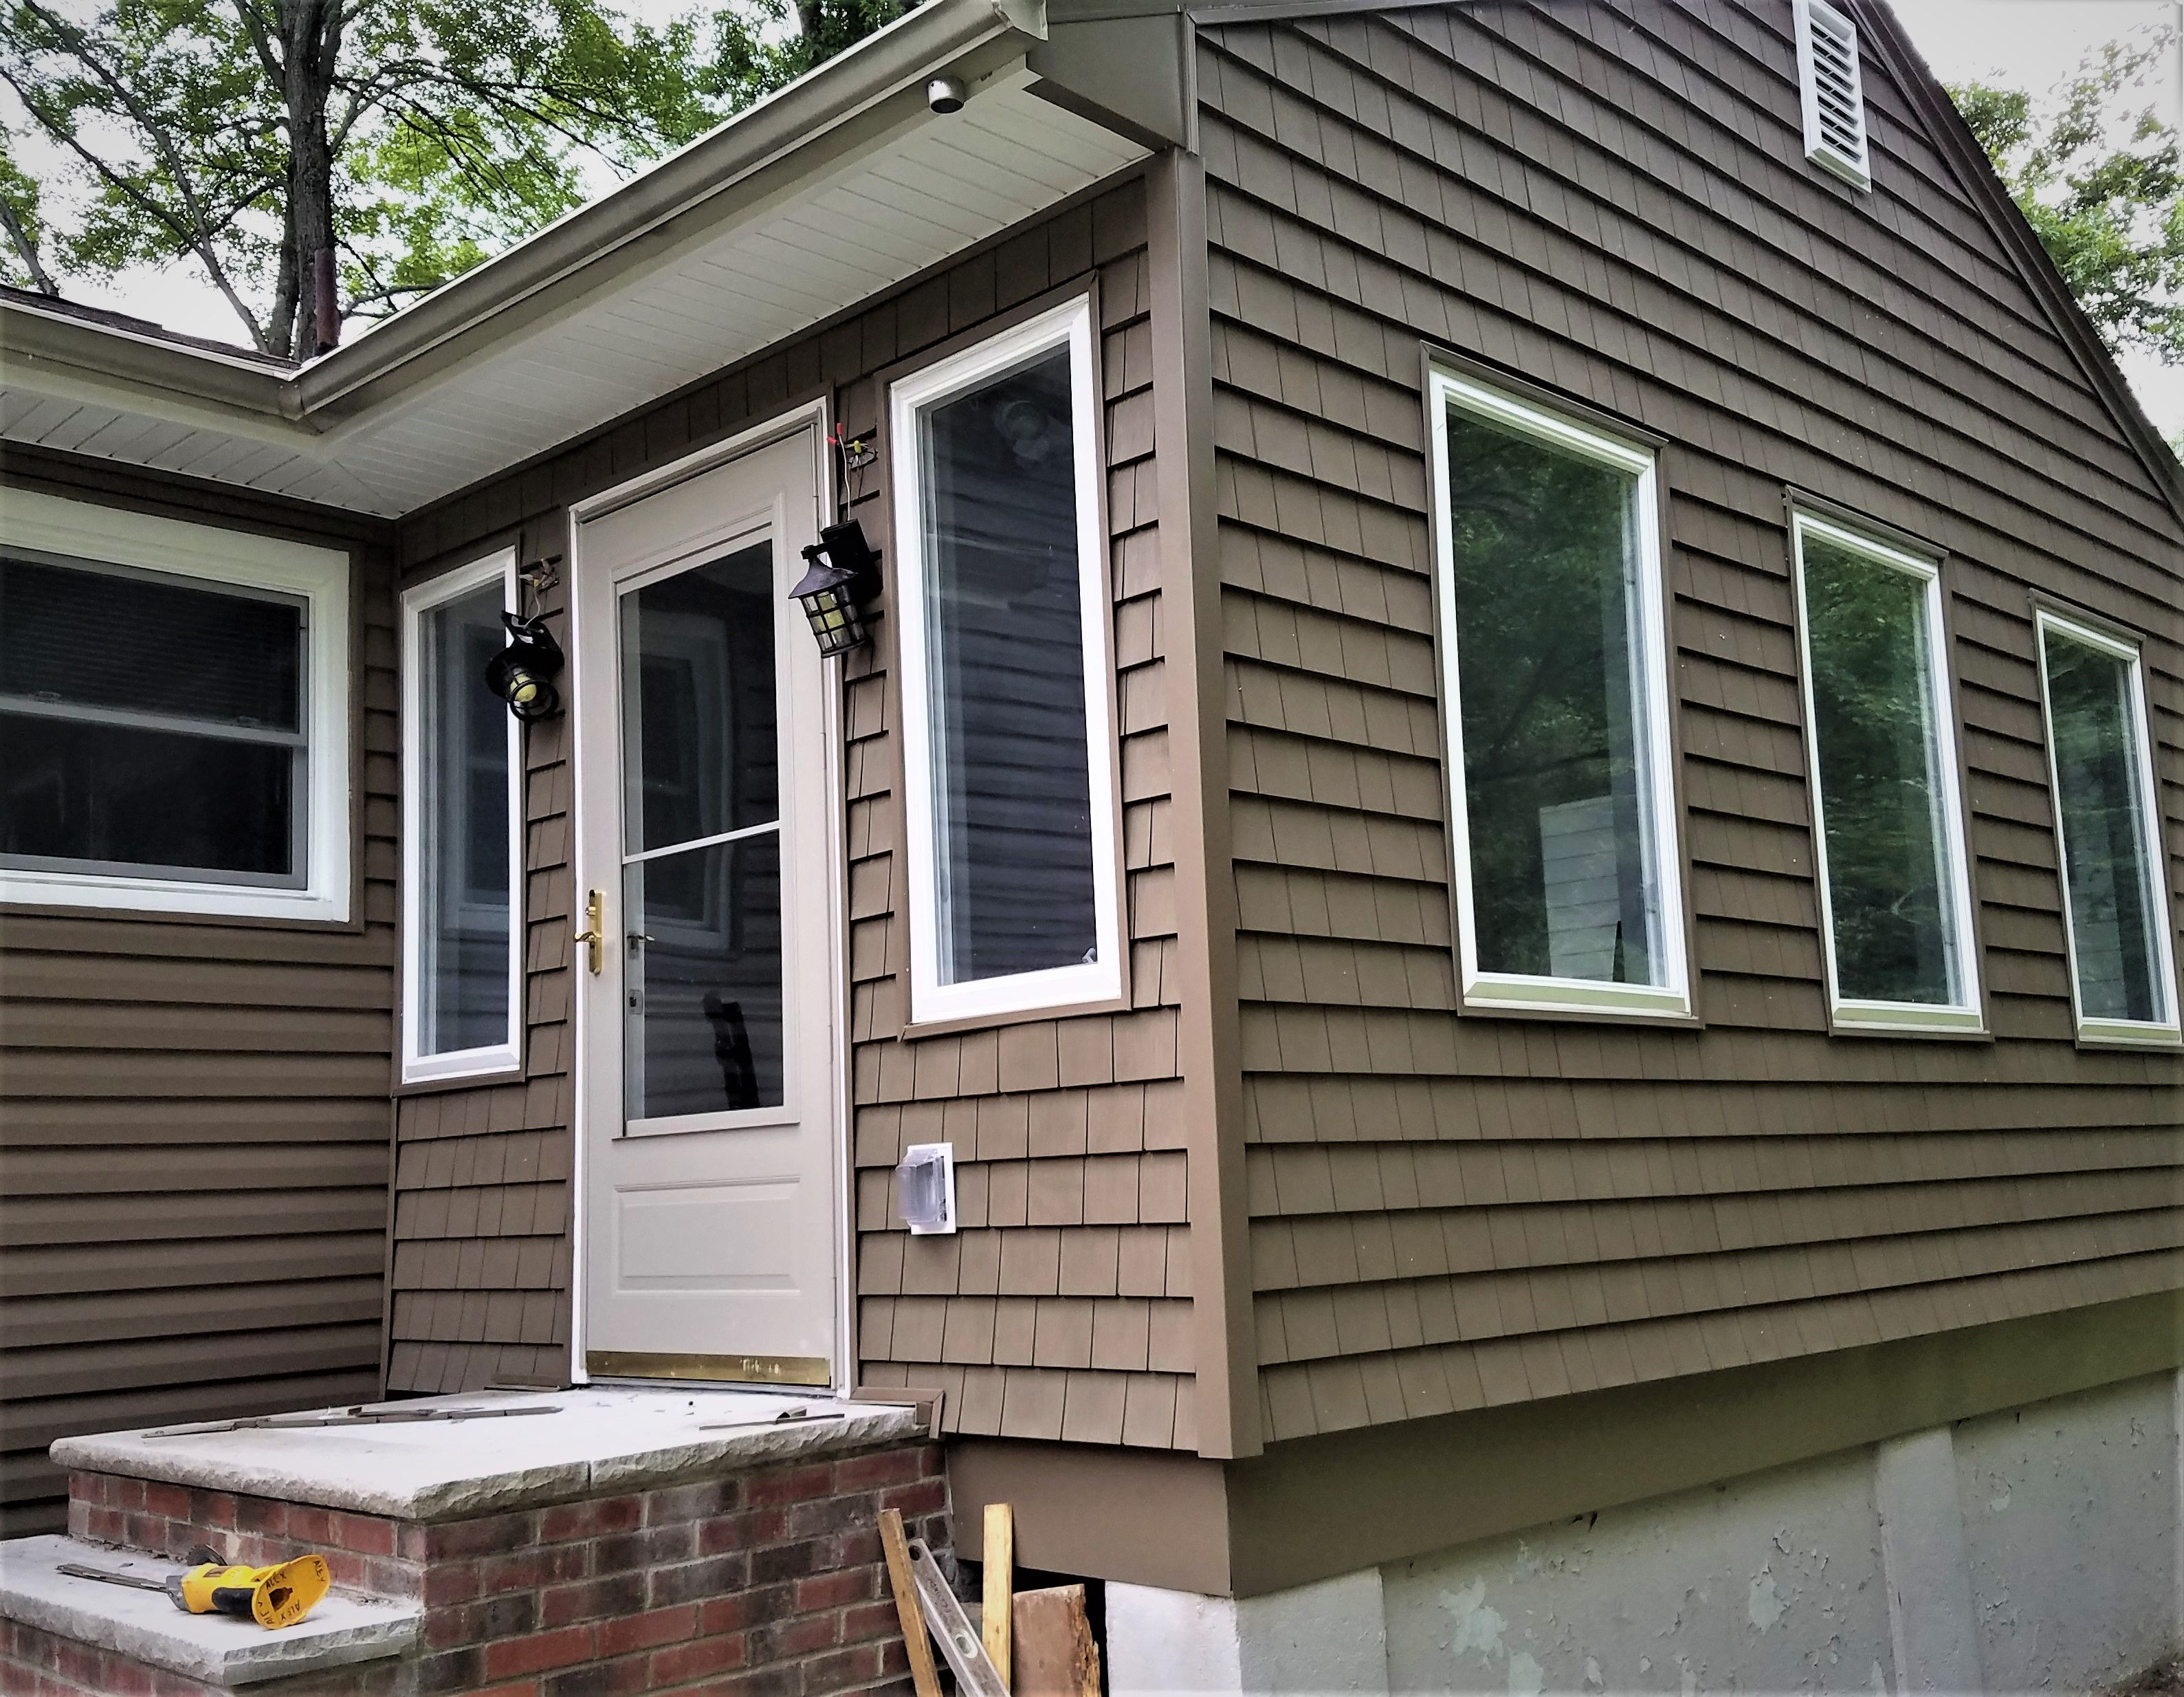 Canyon Drift Colored Charter Oak Dutchlap And Cape Cod Shingle Siding Install In West Orange Nj Shingle Siding House Exterior Global Home